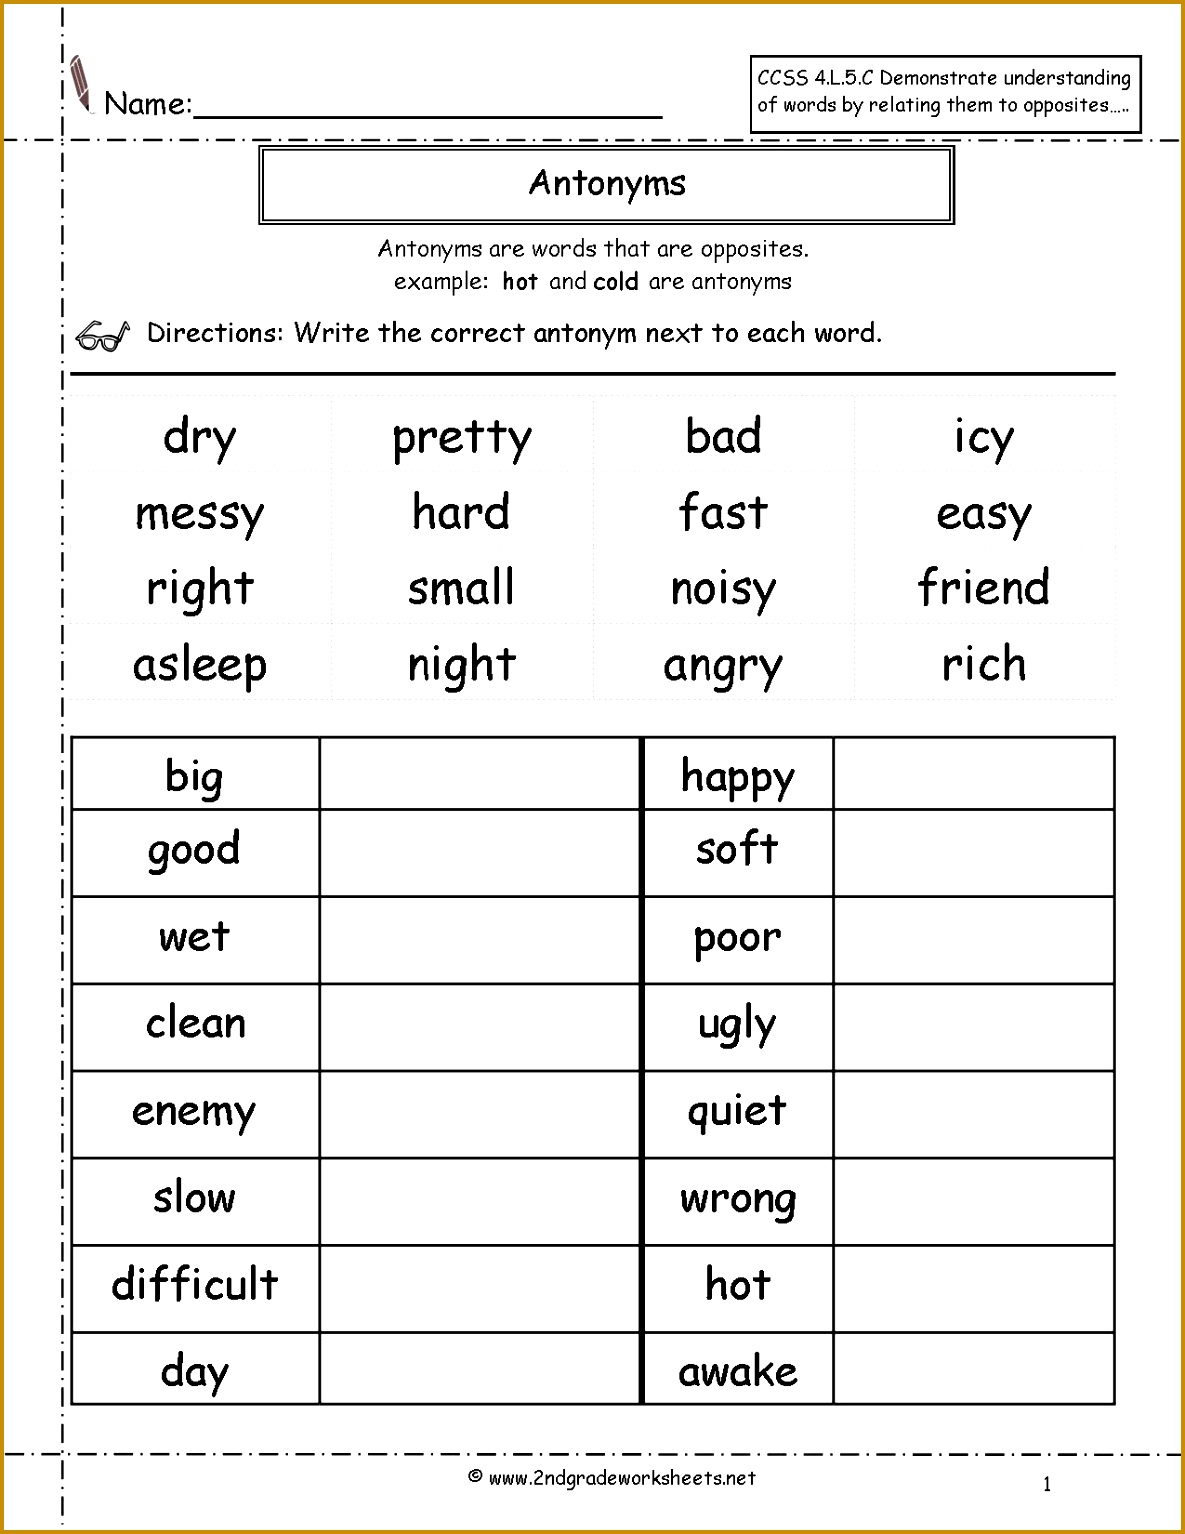 7 Synonyms And Antonyms Worksheets